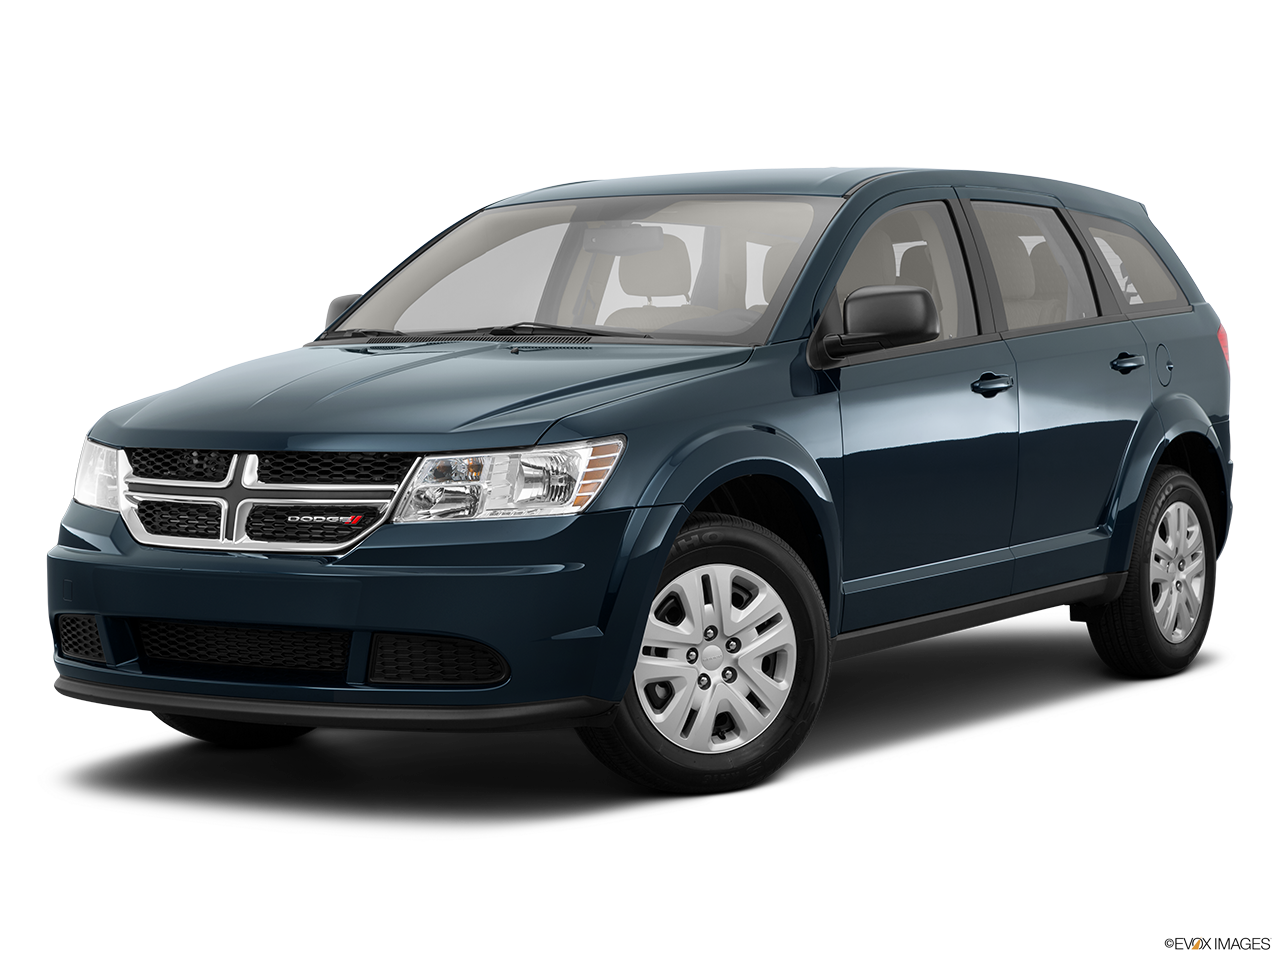 auto parts store huntington beach with Test Drive A 2015 Dodge Journey At Huntington Beach Chrysler Dodge Jeep Ram Serving Orange County on Reviews Orange County Tire Auto Service furthermore Seal Beach Shooting Worst In Oc History 2 as well 53116 in addition Col moreover Col.